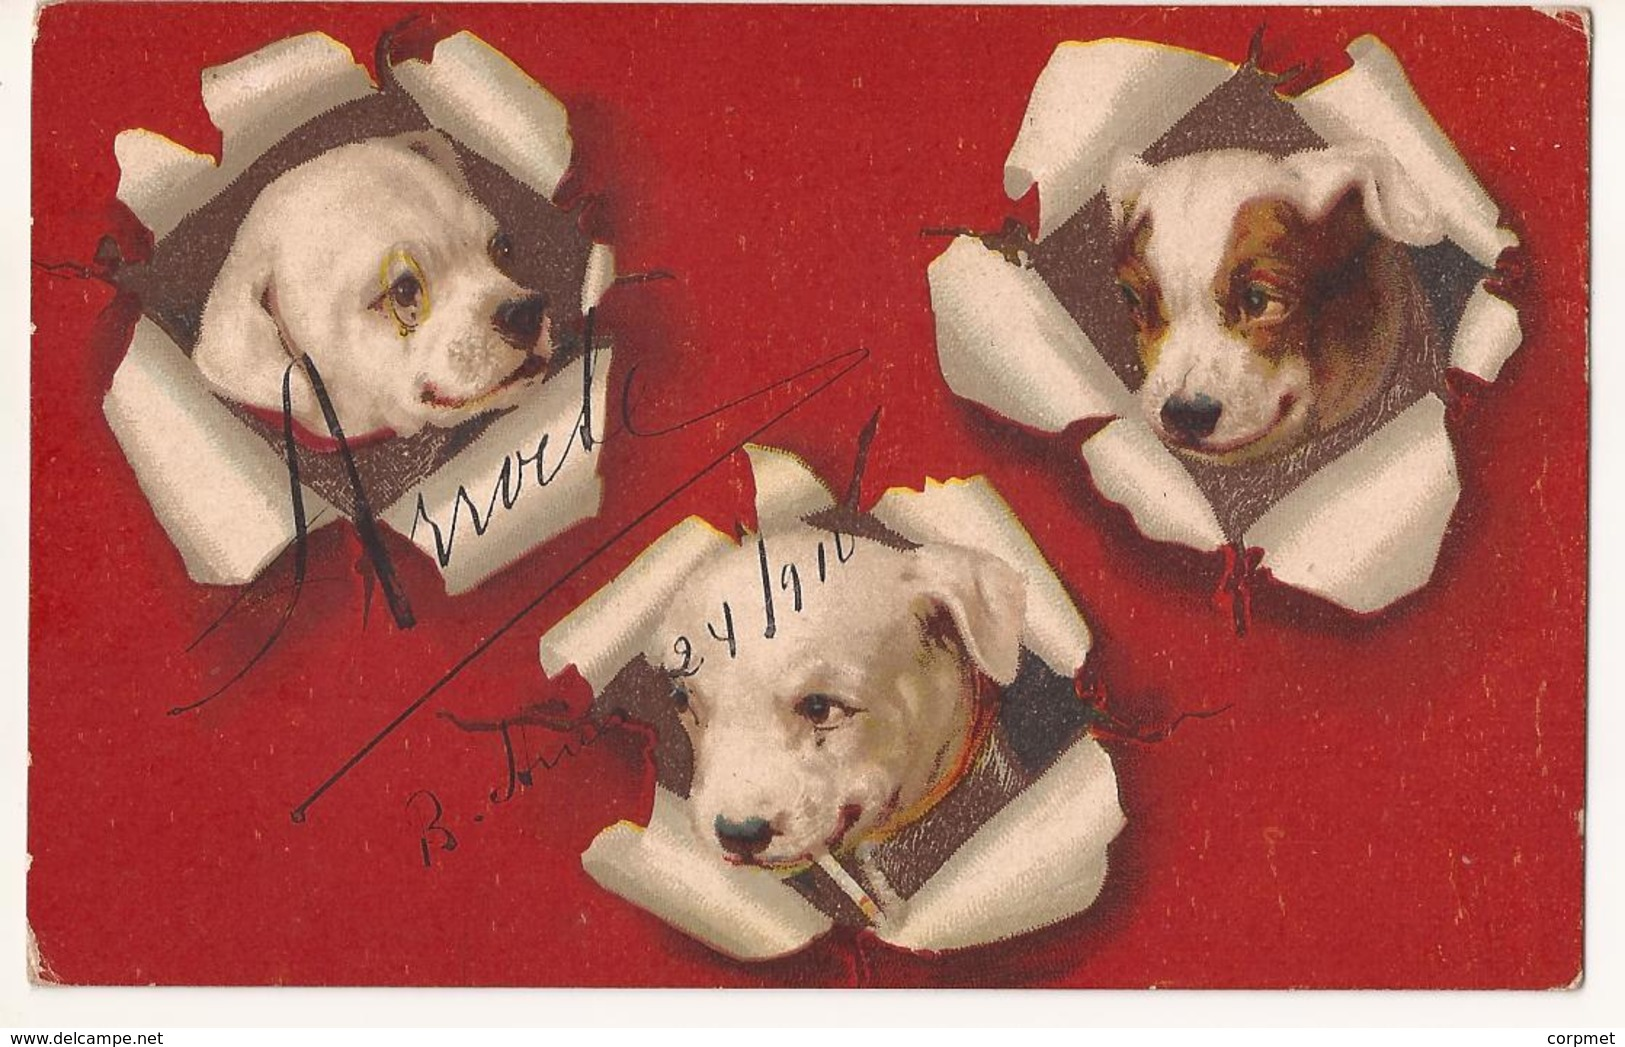 DOGS - Vf POSTCARD Circulated In 1910 From ARGENTINA (with Advertisement From TIENDA SAN JUAN) To MONTEVIDEO - Ed. H&S - Hunde